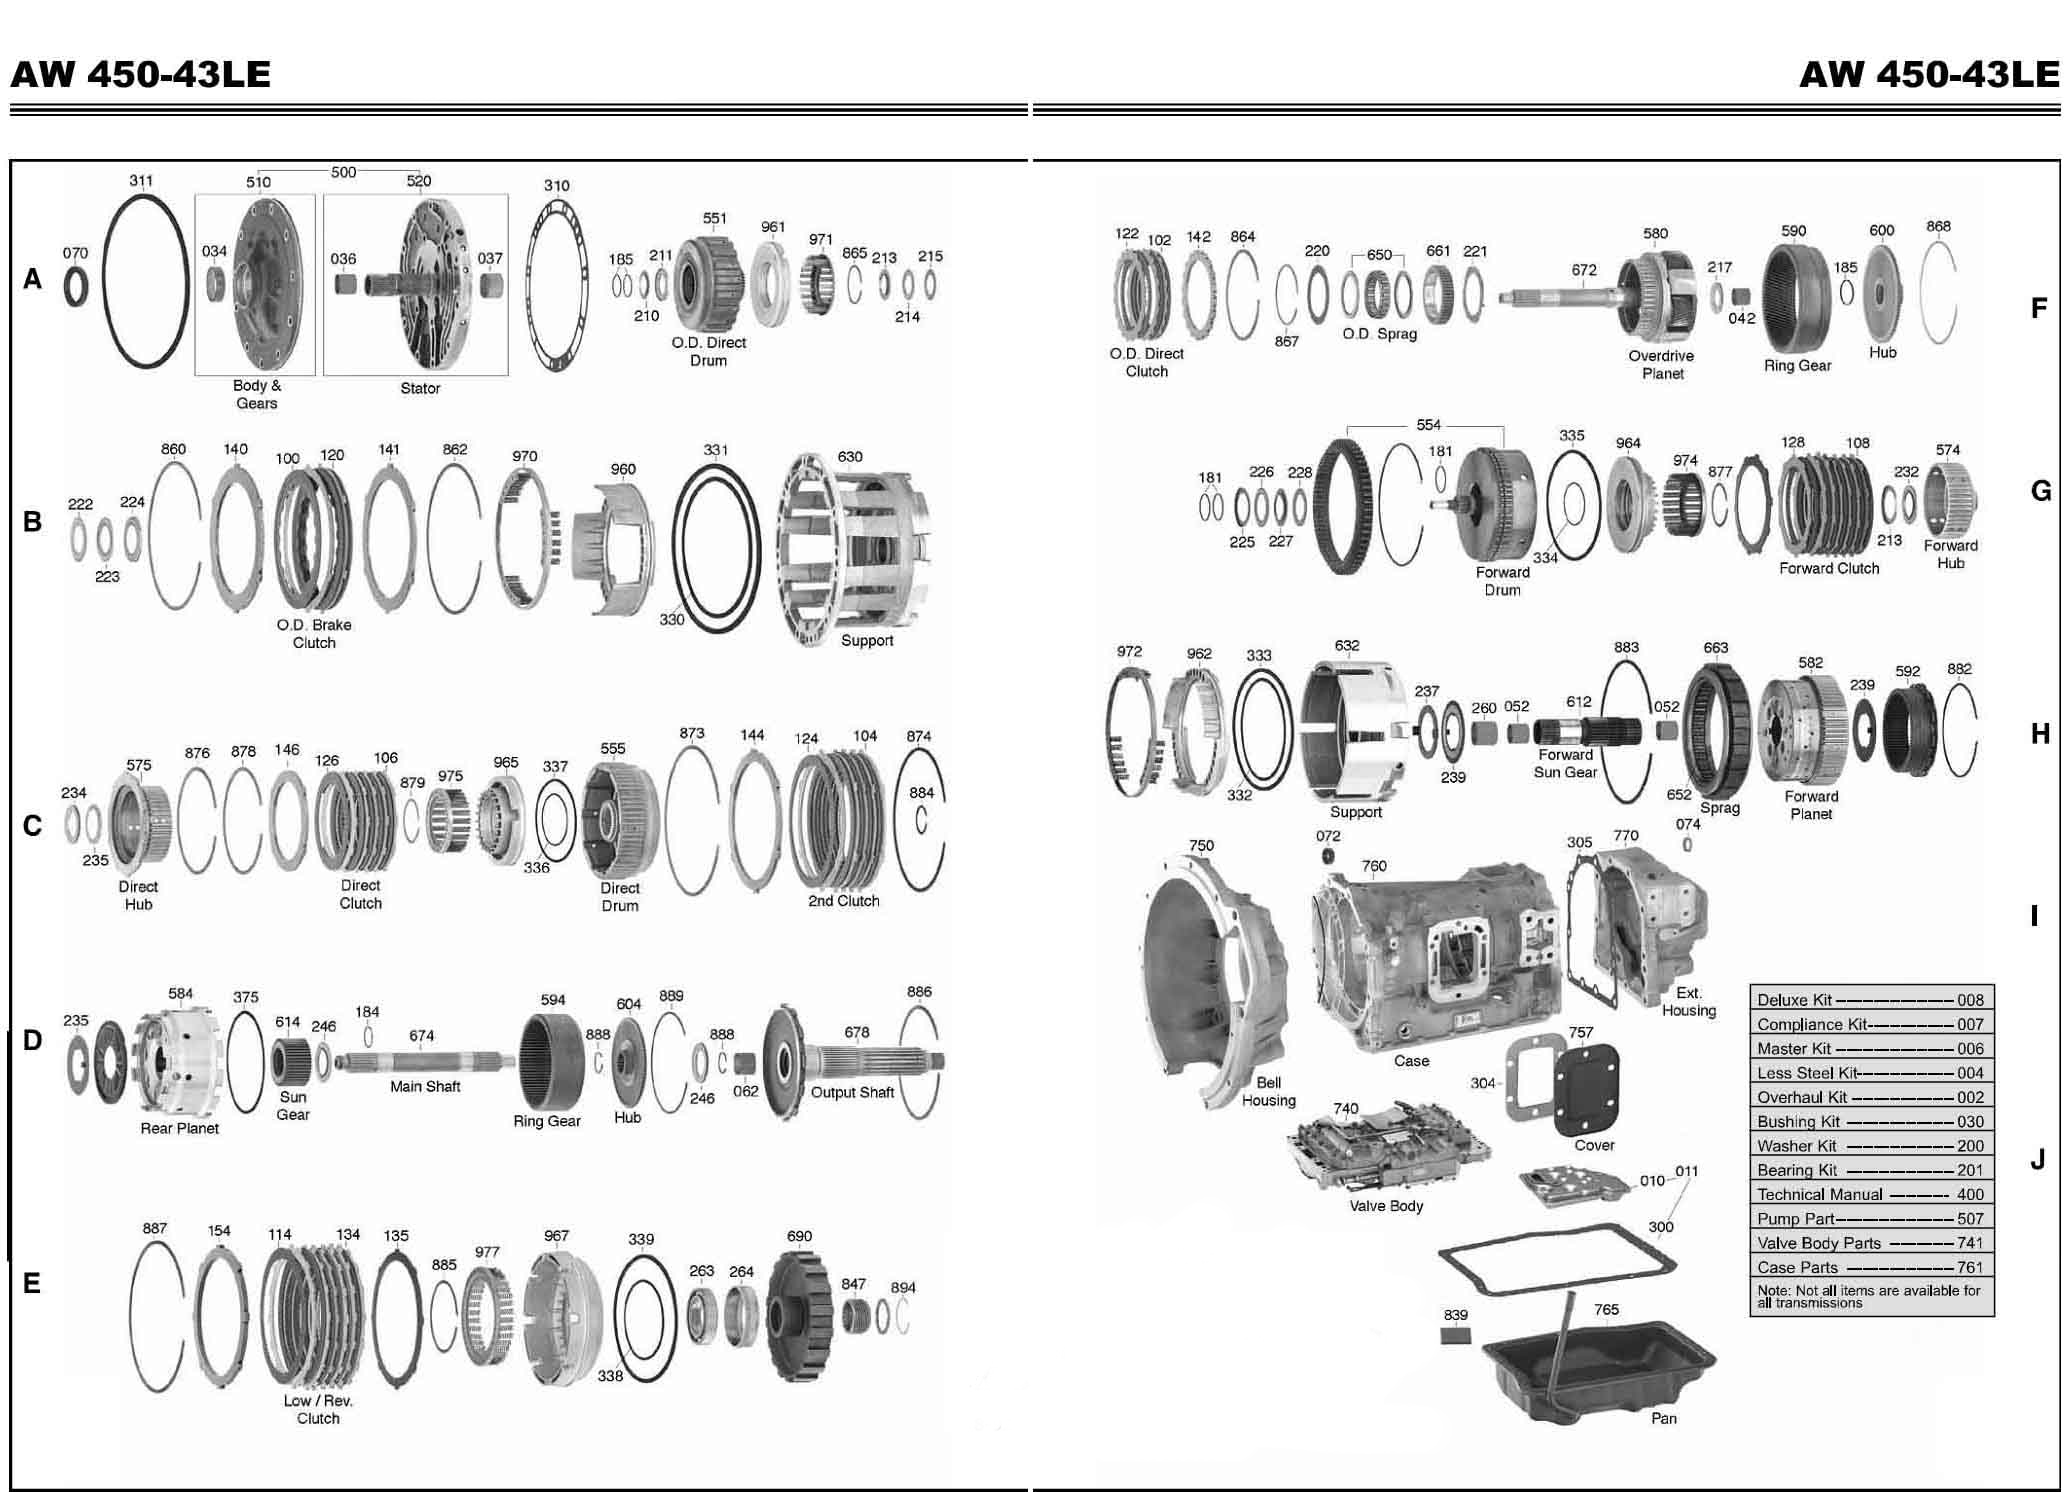 automatic transmission 450 43le wiring diagram    transmission    repair manuals aw    450       43le    instructions for     transmission    repair manuals aw    450       43le    instructions for